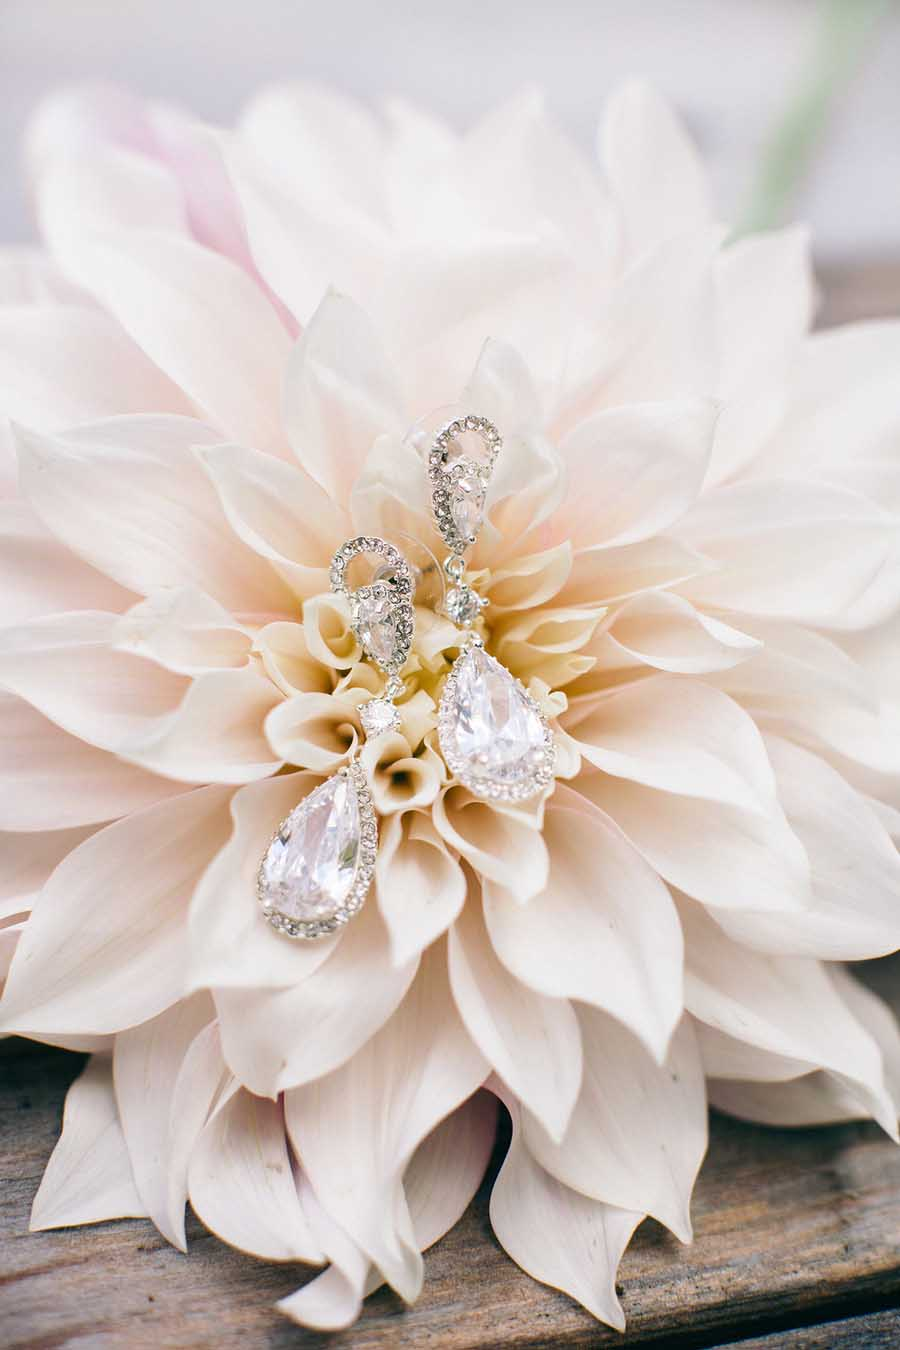 Davids Bridal Wedding Earrings - Nikki Santerre Photographer